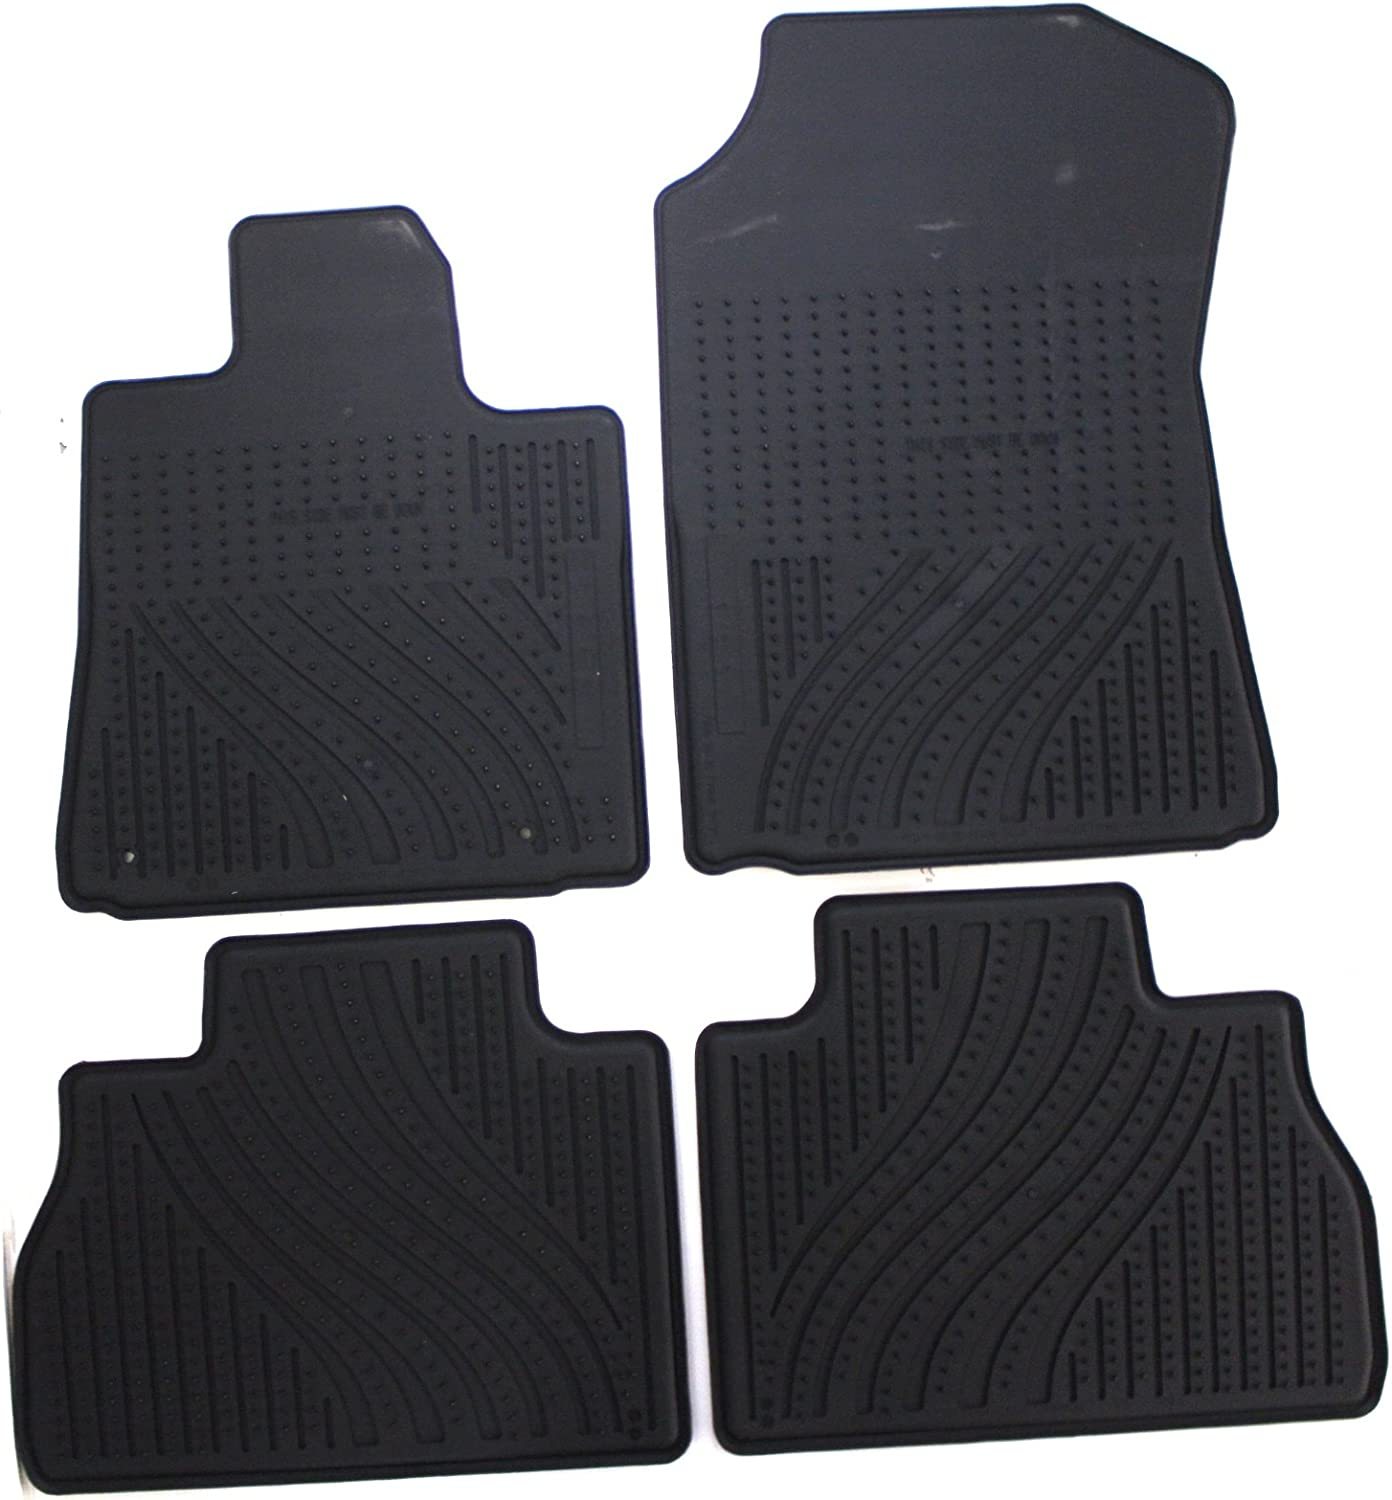 Set of 4 Black Genuine Toyota Accessories PT908-34101-02 Front and Rear All-Weather Floor Mat